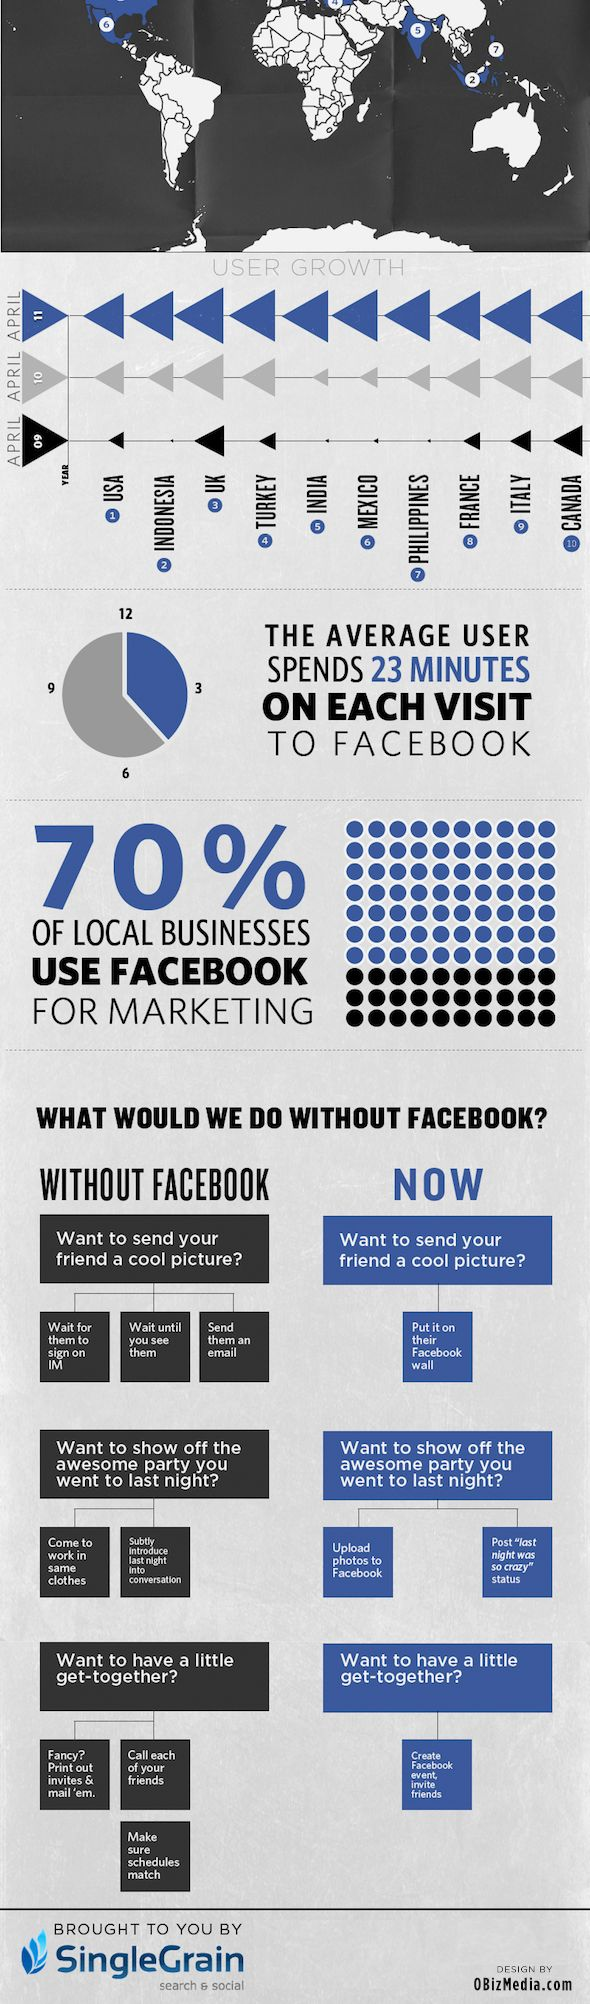 A World Without Facebook - #Infographic